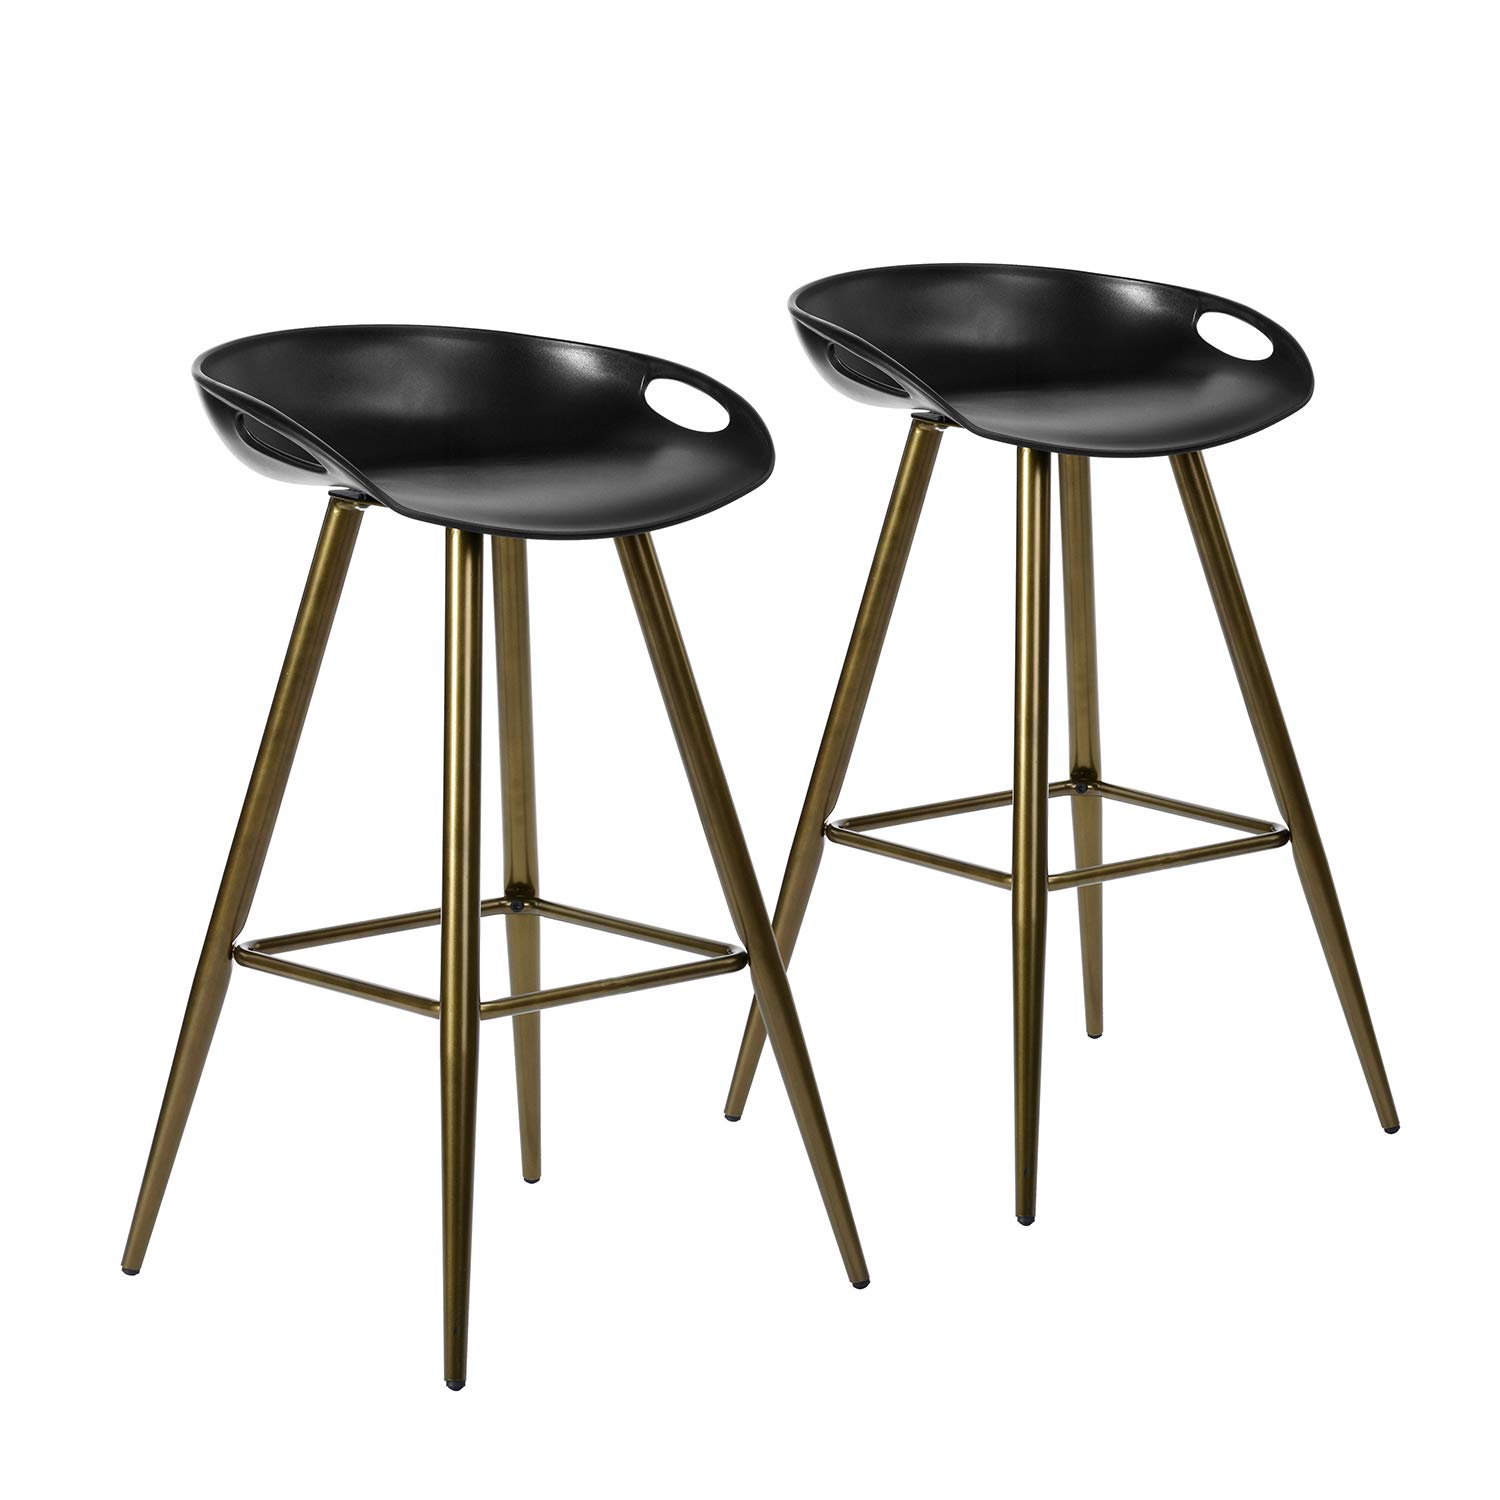 FurnitureR 2Pcs Set Pub Bar Stools Retro Design Metal Round Counter Height Stool Low Back Bar Chair Bronze